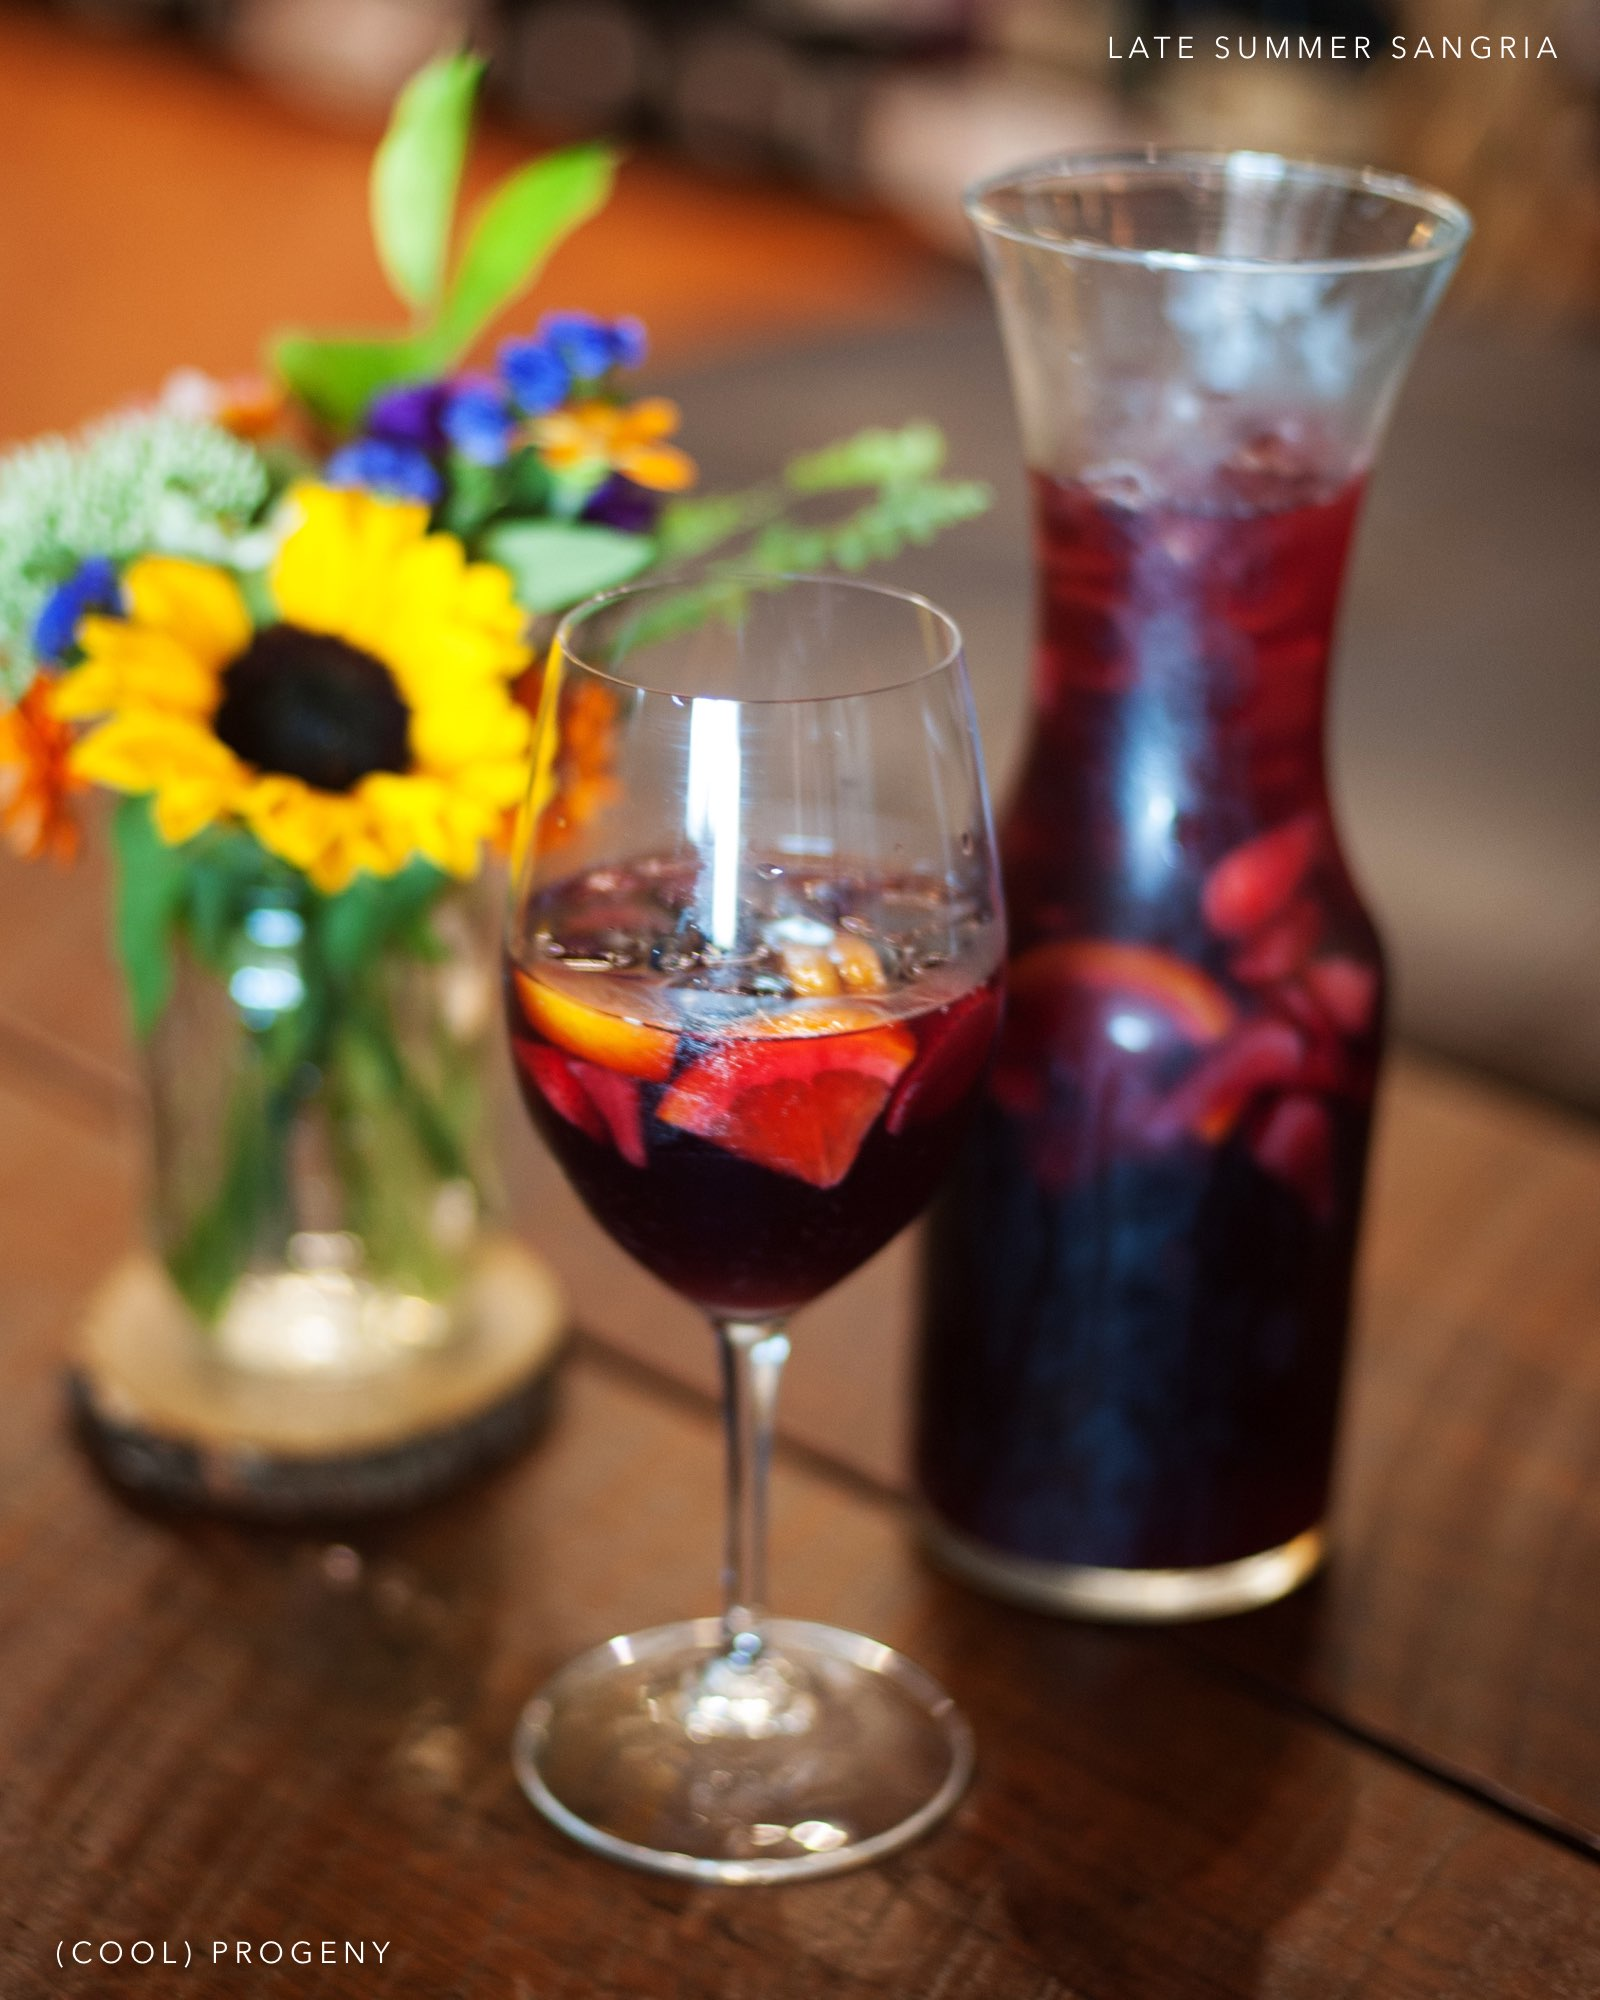 Late Summer Sangria